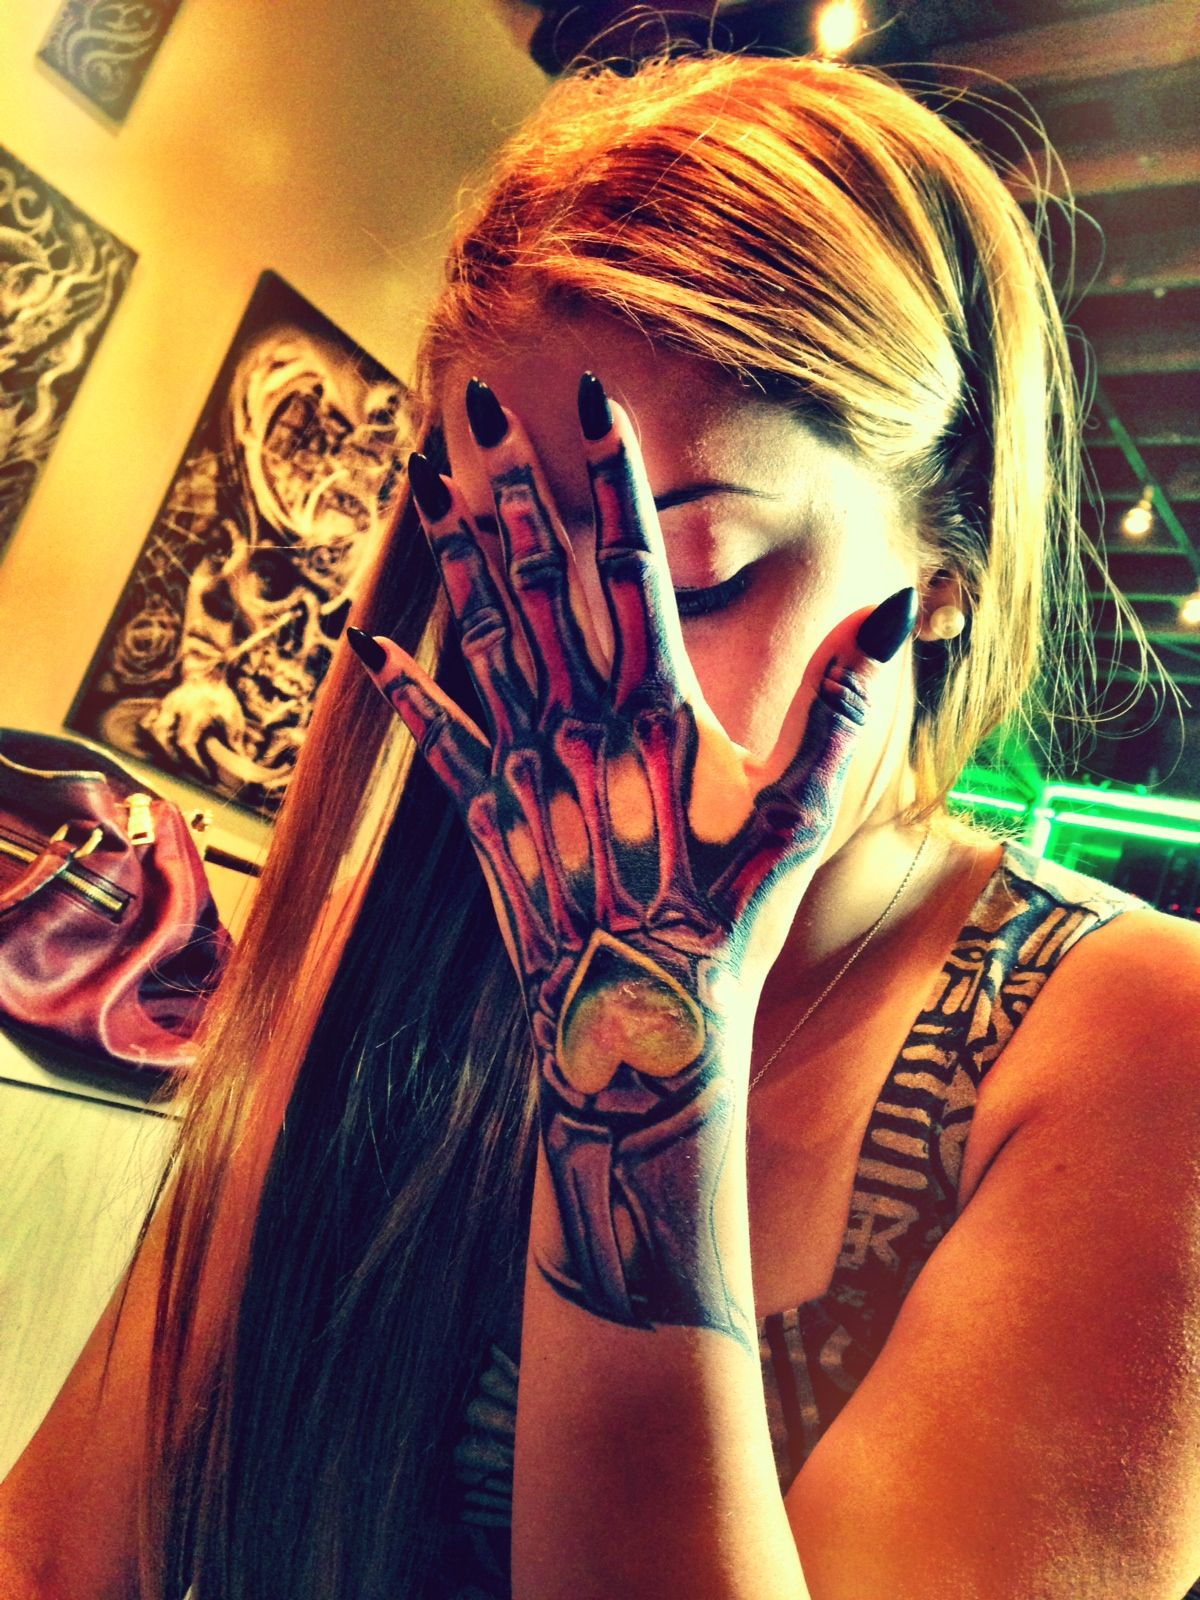 skeleton hand tattoo tattoo s pinterest tatuajes me